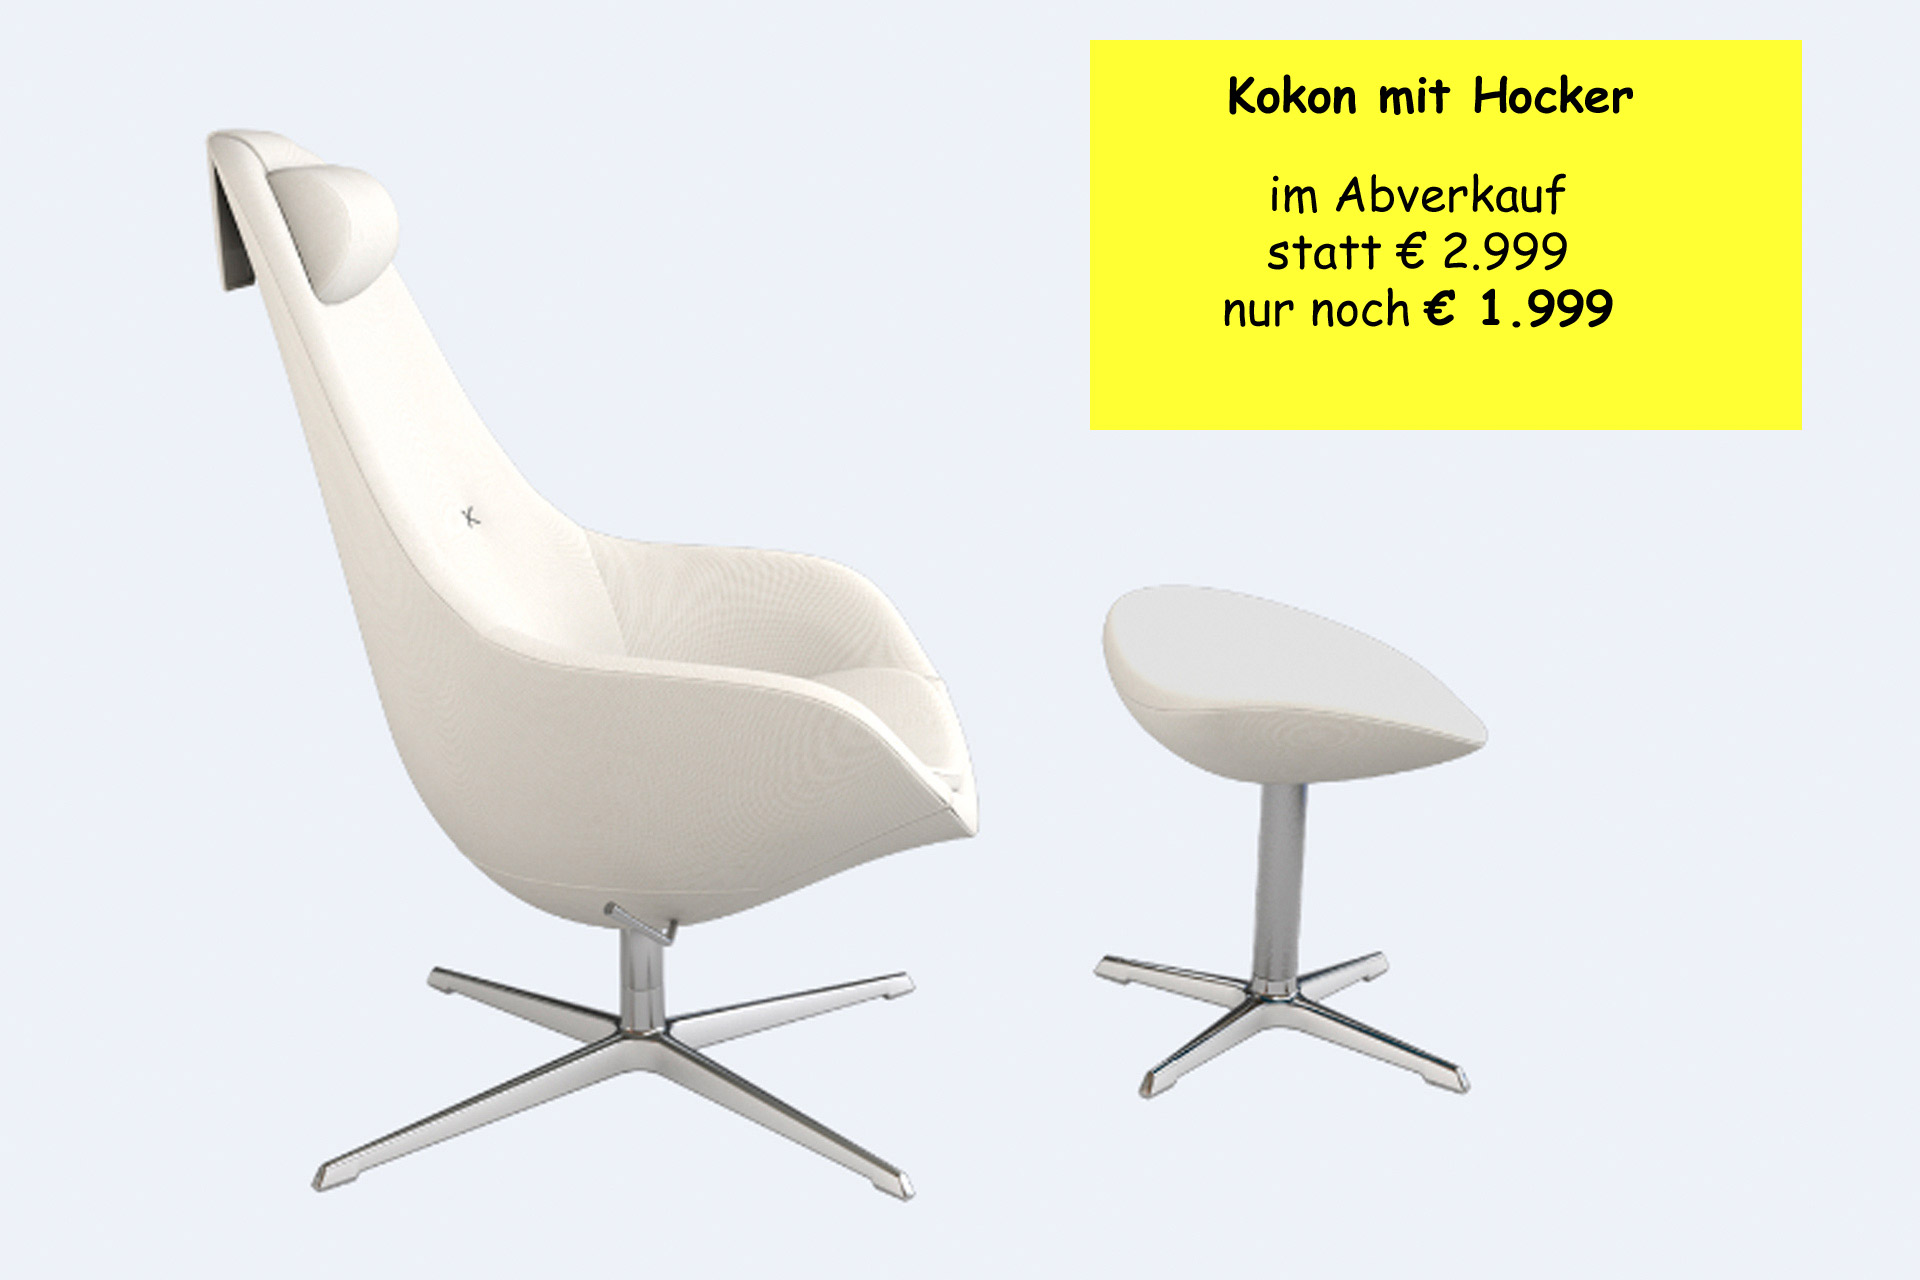 kokon mit hocker im abverkauf wohnopposition berlin. Black Bedroom Furniture Sets. Home Design Ideas